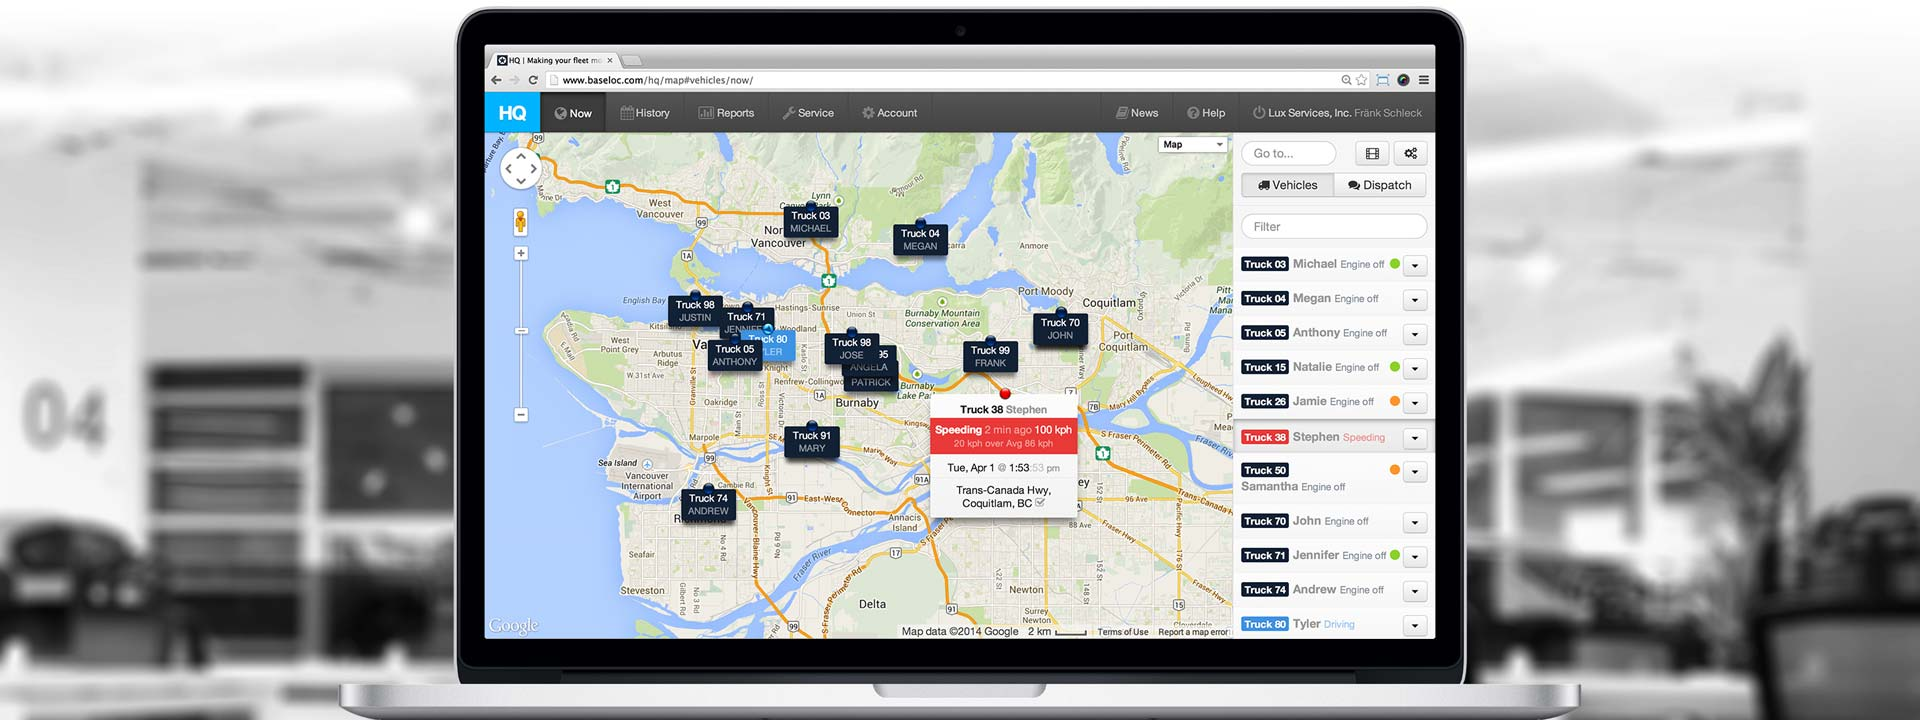 Hq Real Time Vehicle Tracking